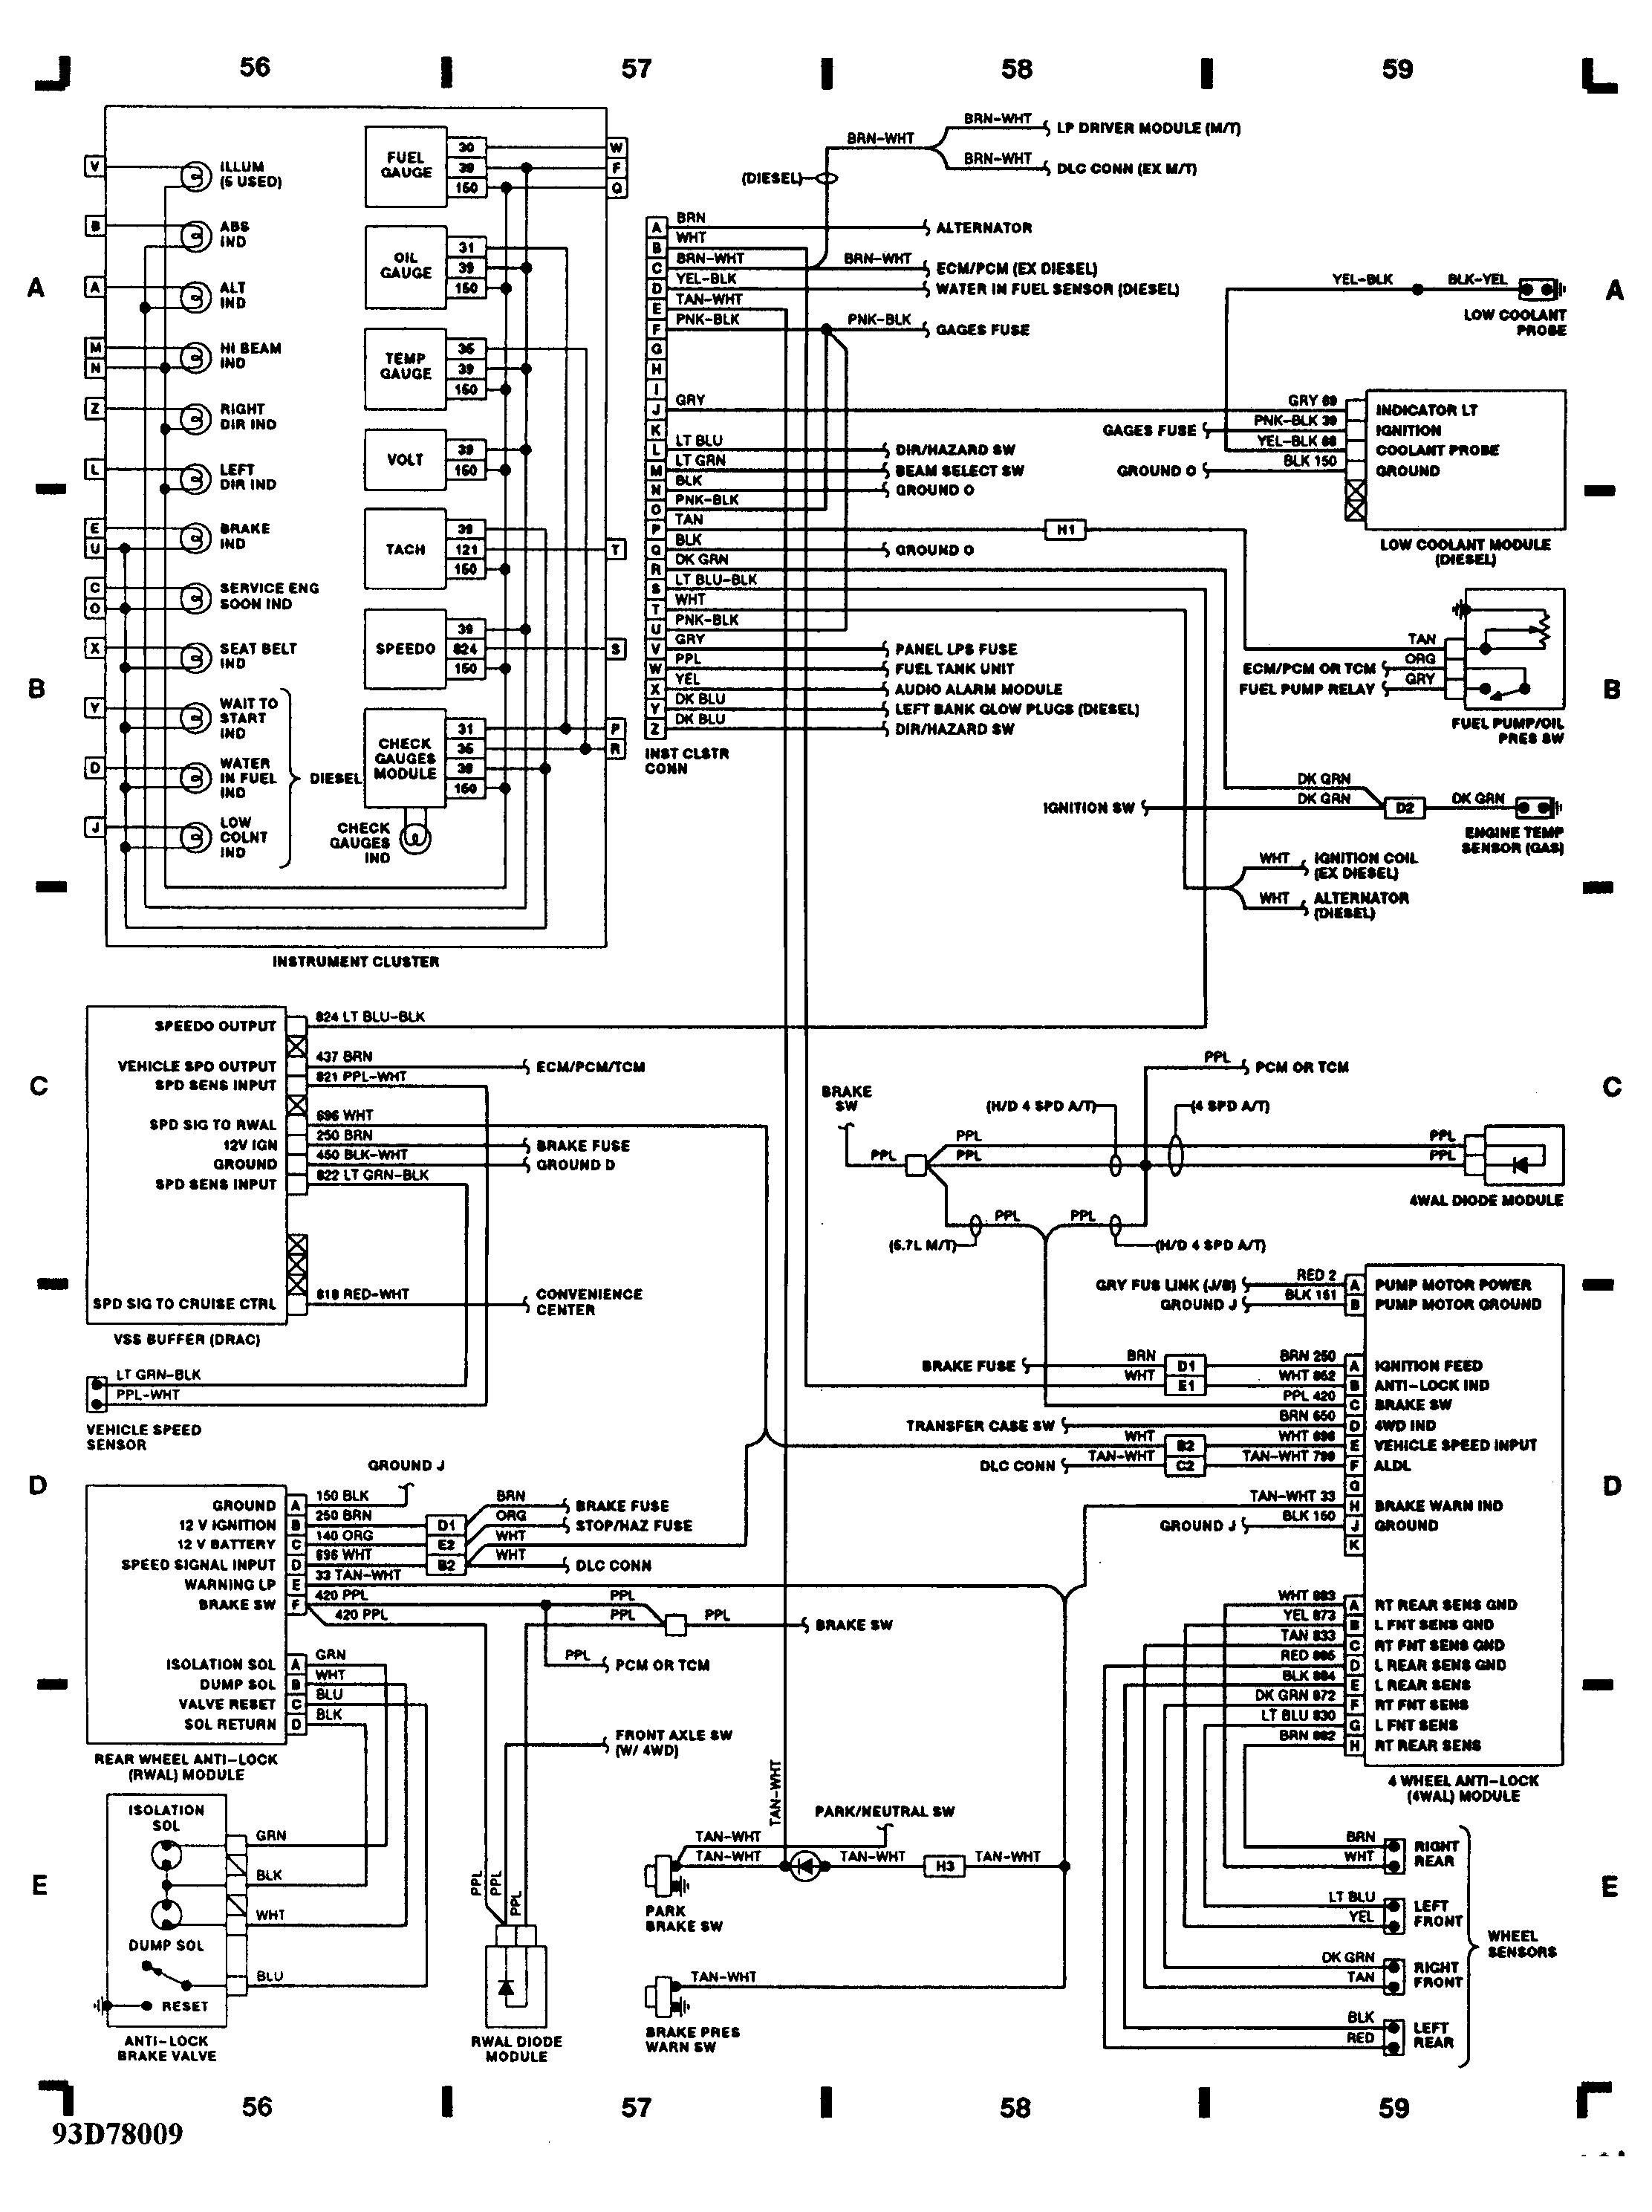 1989 chevy astro van wiring diagram u2022 wiring diagram for free